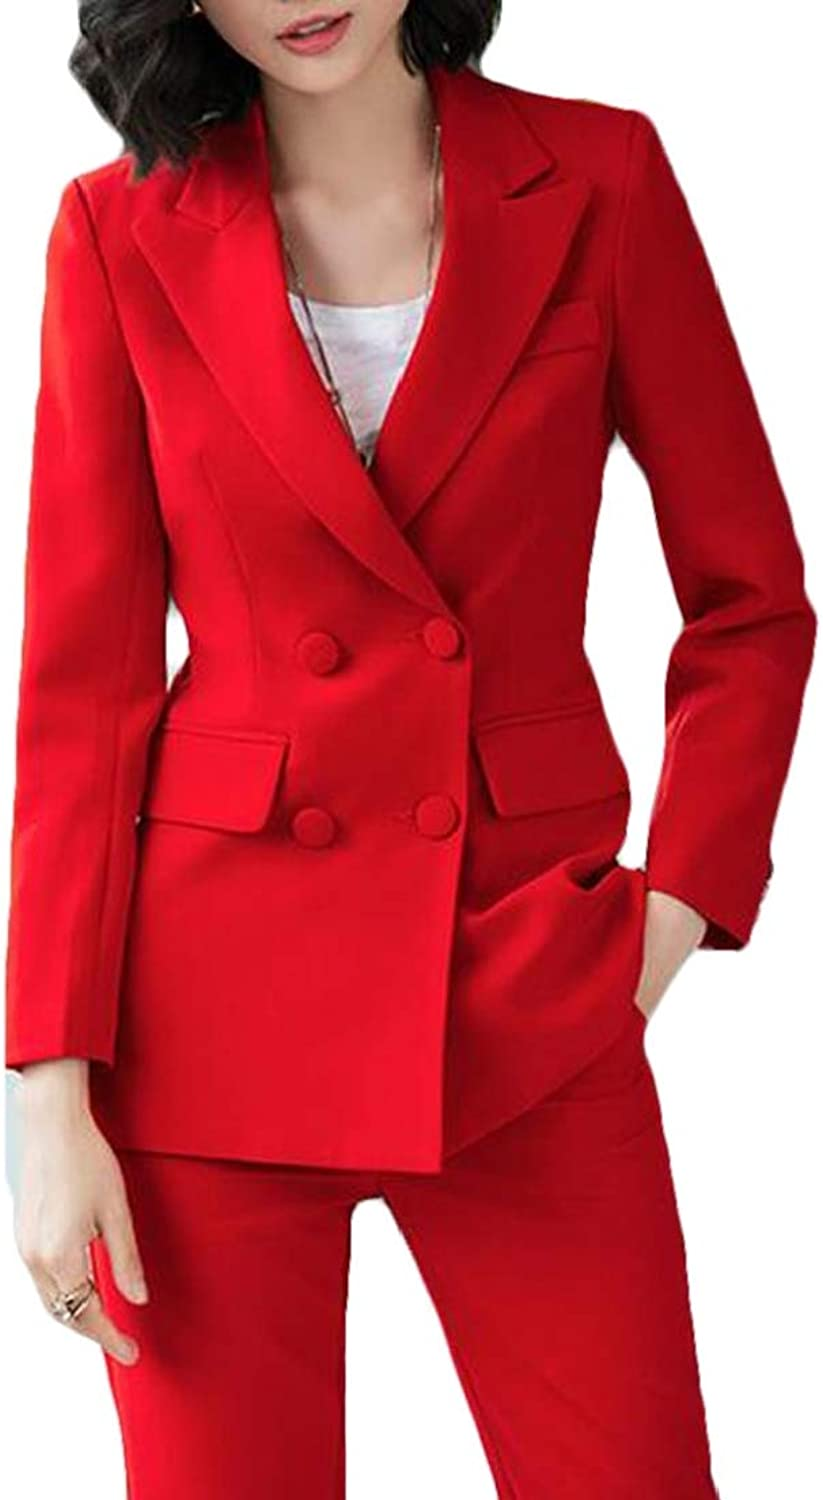 EJLJ Women 2 Pcs DoubleBreasted Pure color Business Work Suits Sets Outfits